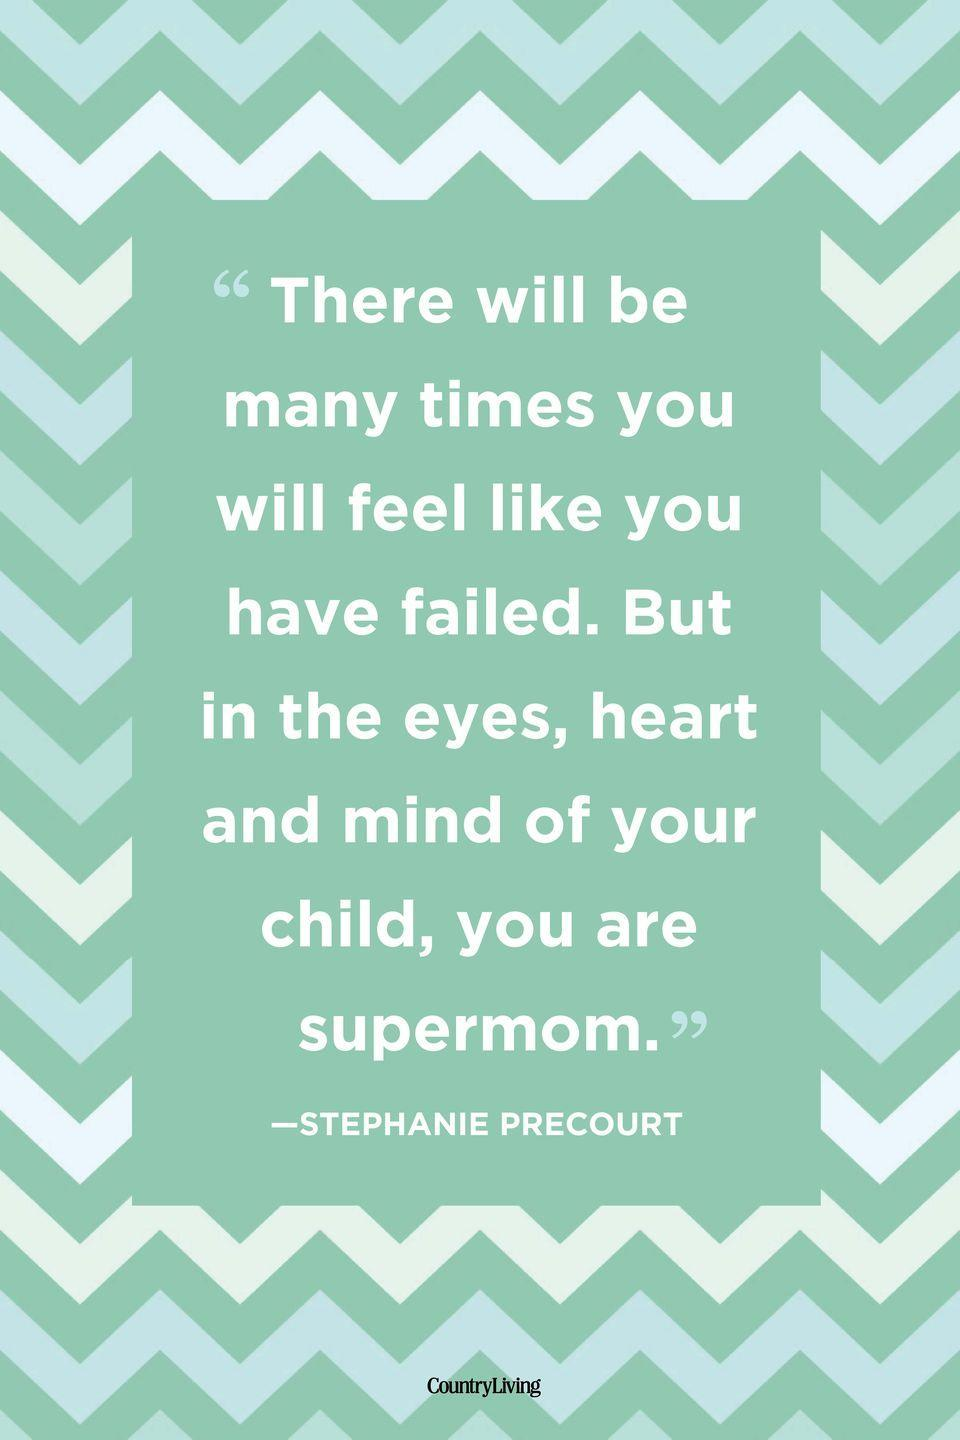 "<p>""There will be many times you will feel like you have failed. But in the eyes, heart and mind of your child, you are supermom.""</p>"